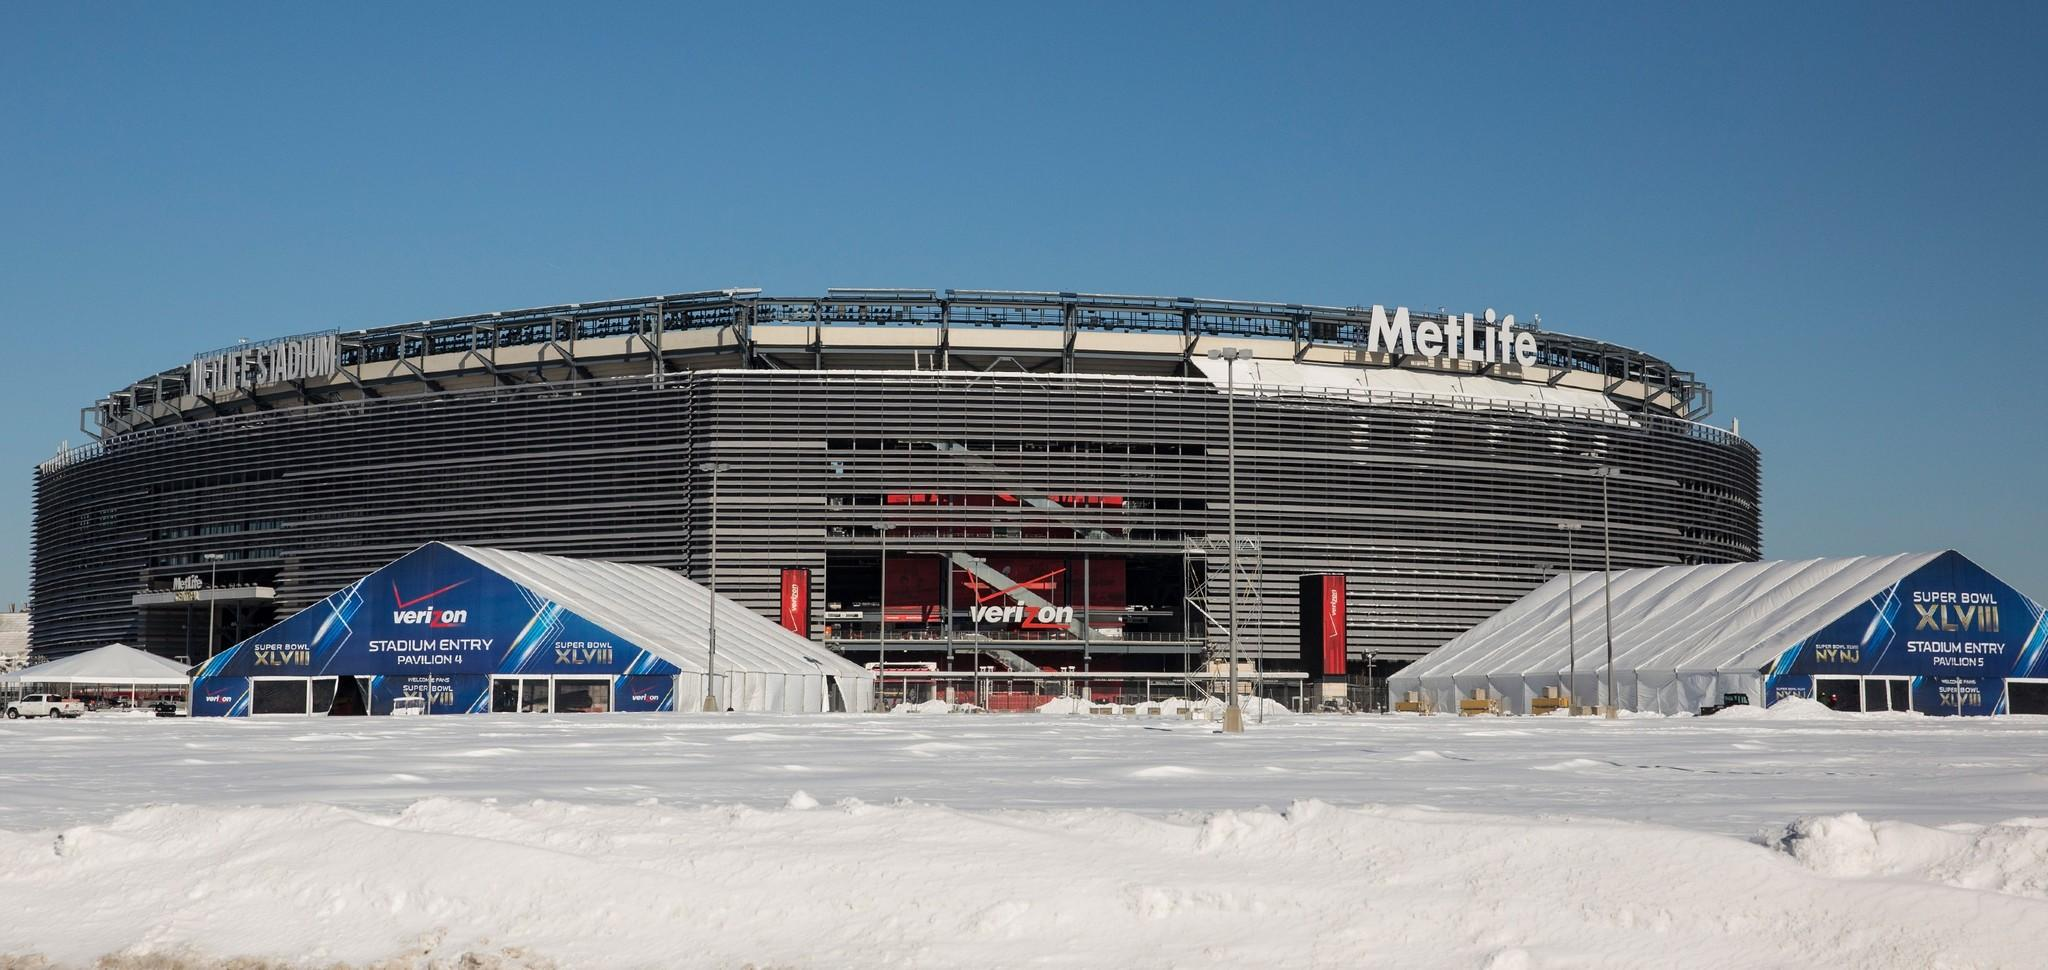 Snow surrounds MetLife Stadium, which will host Superbowl XLVIII next ...